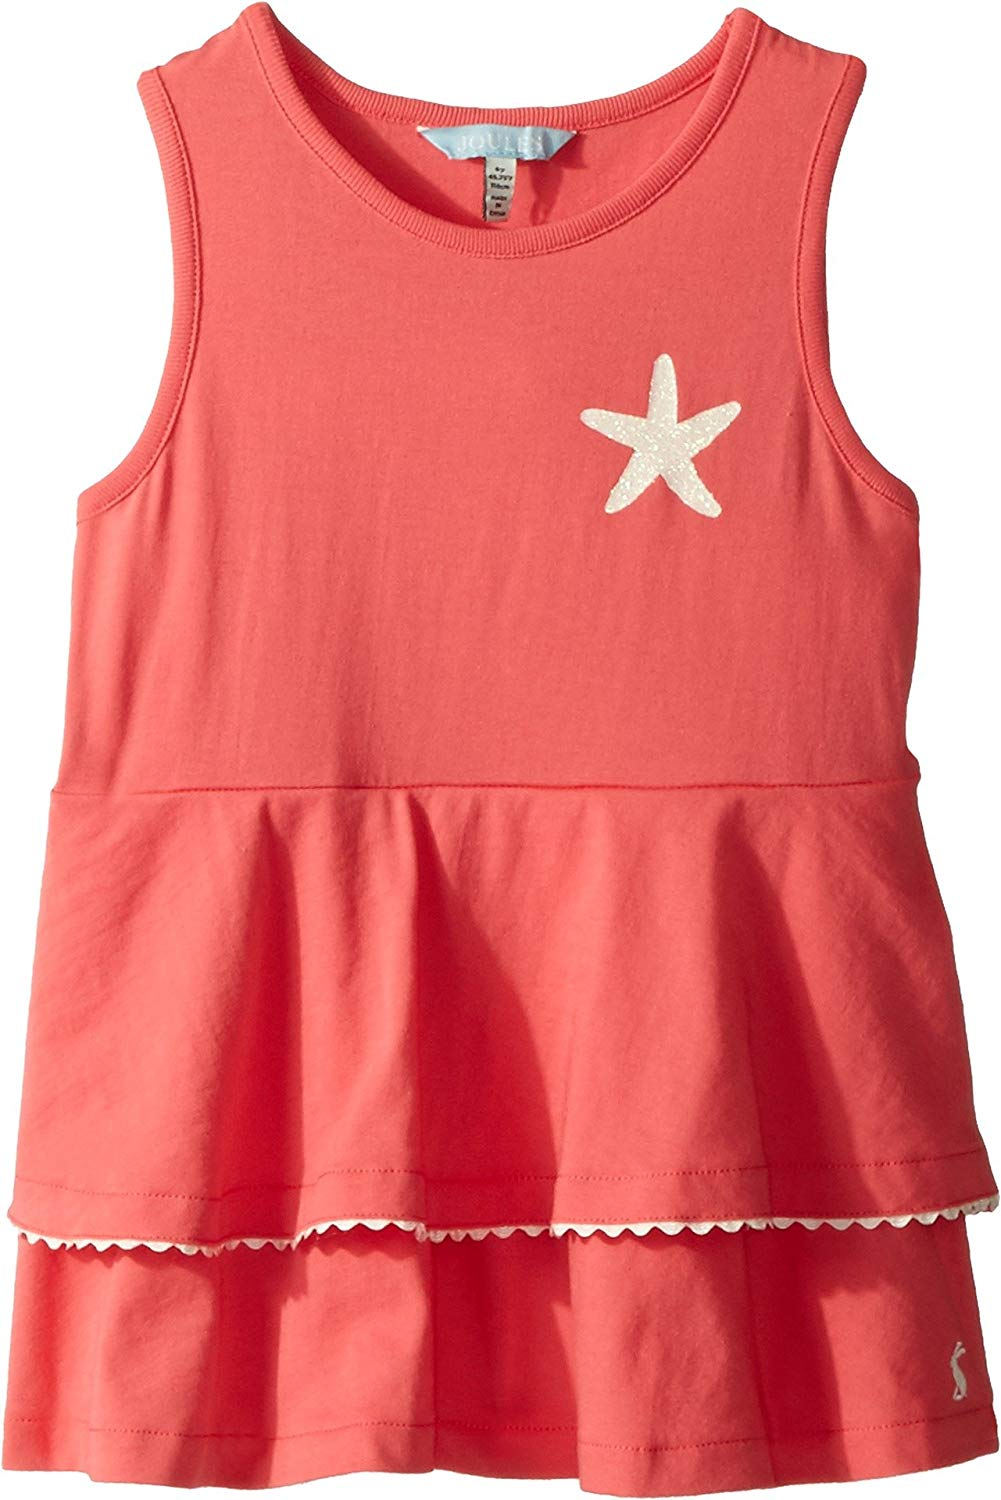 Joules Kids Womens Double Peplum Jersey Tank Top Toddler//Little Kids